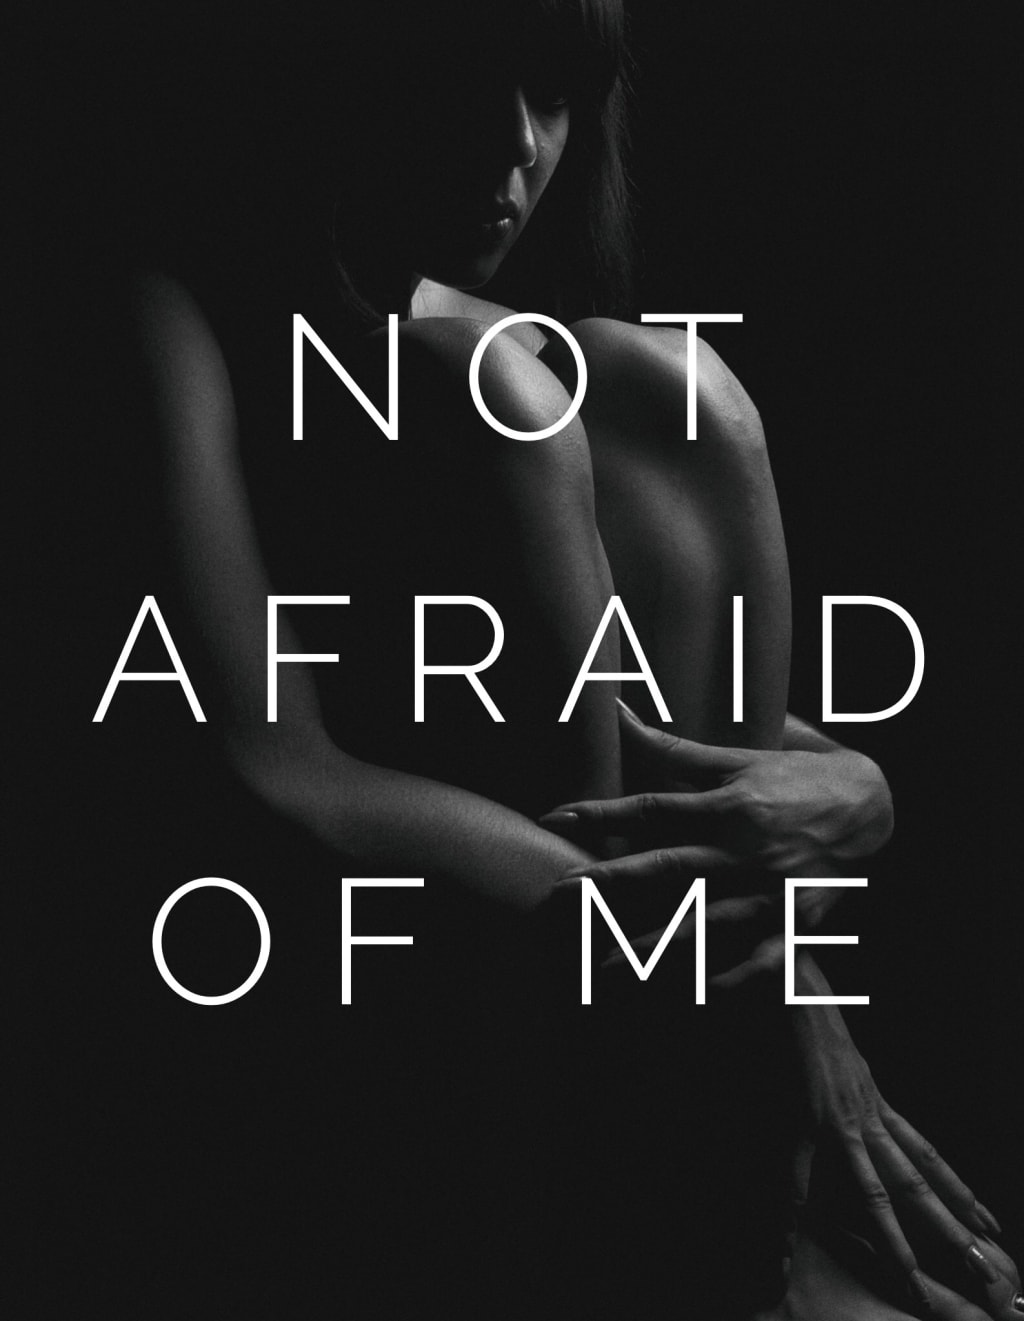 Not Afraid of Me